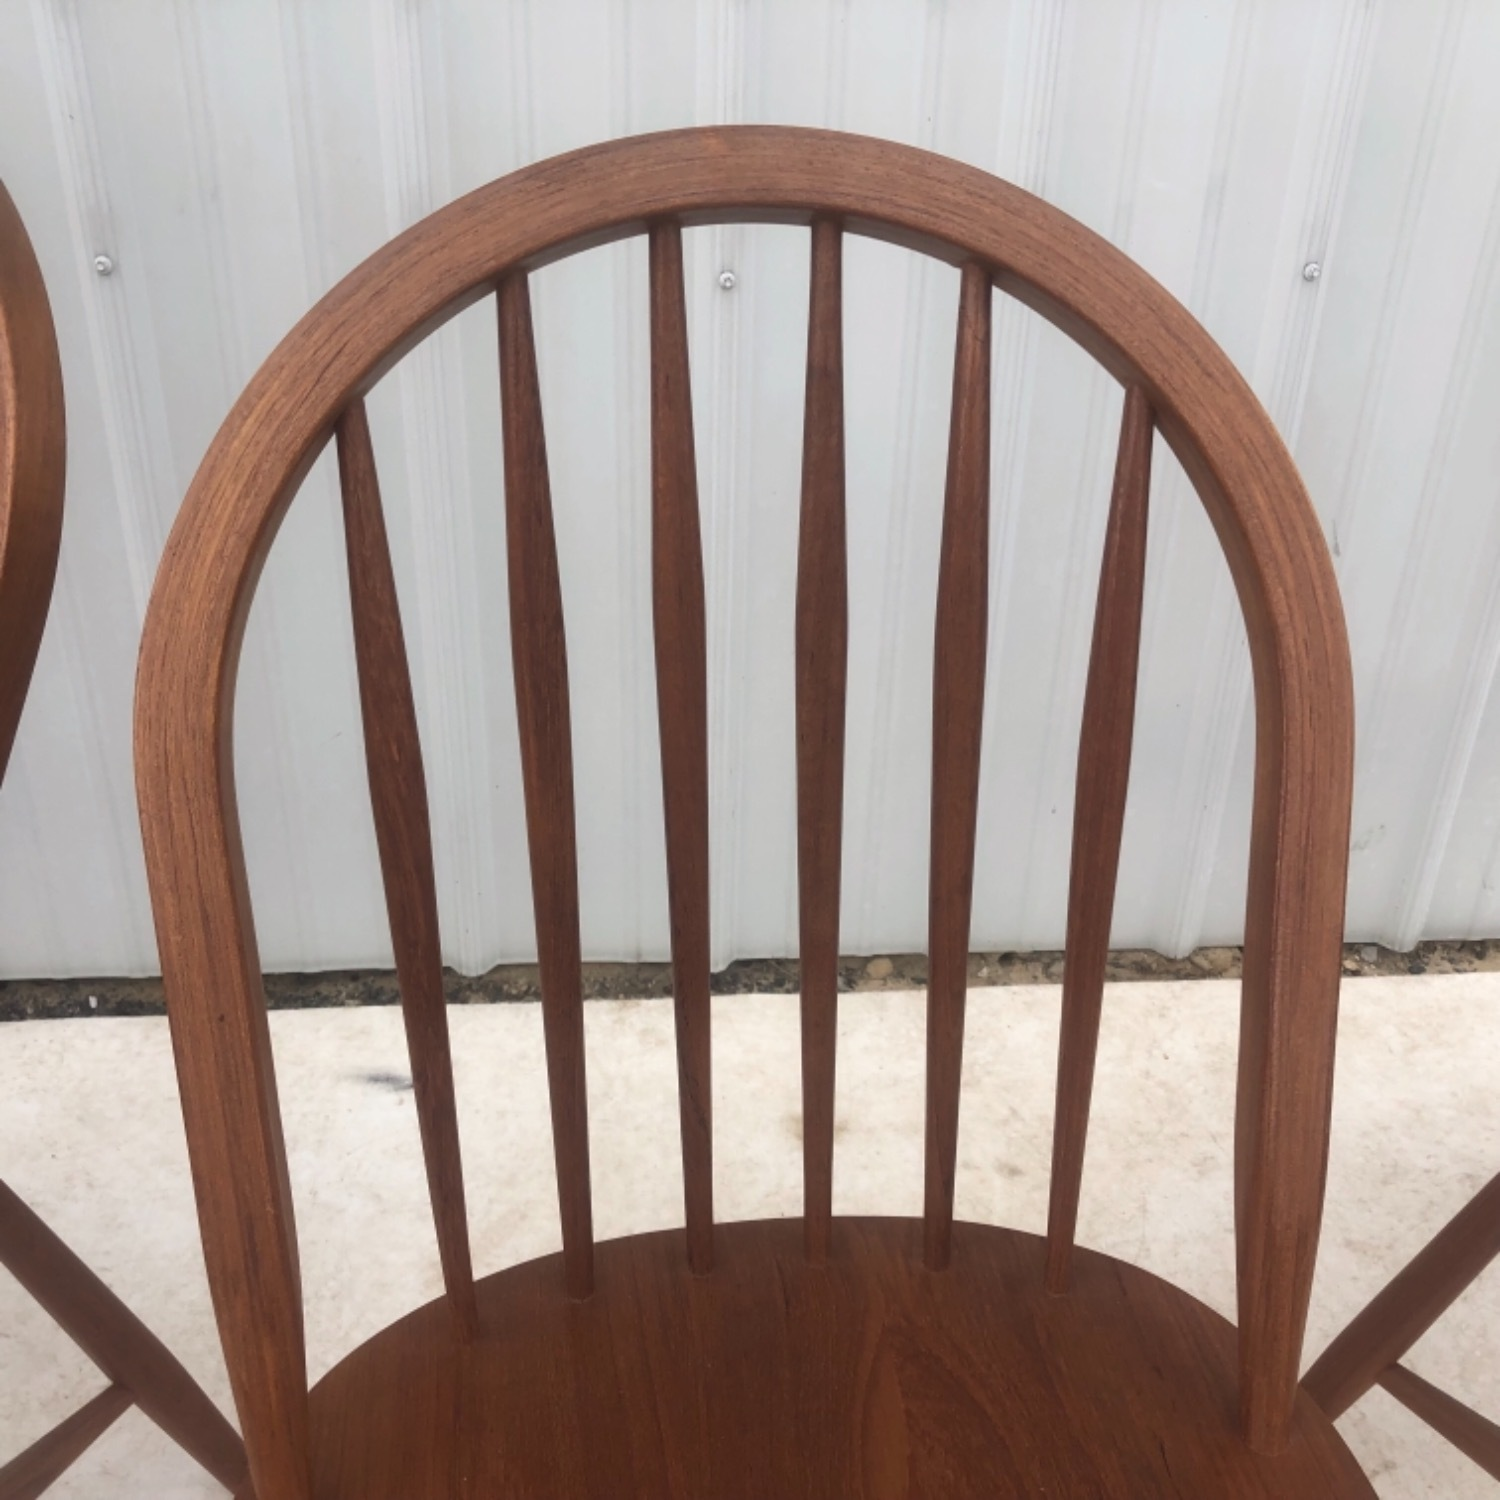 Vintage Modern Dining Set w/ Six Chairs - image-19